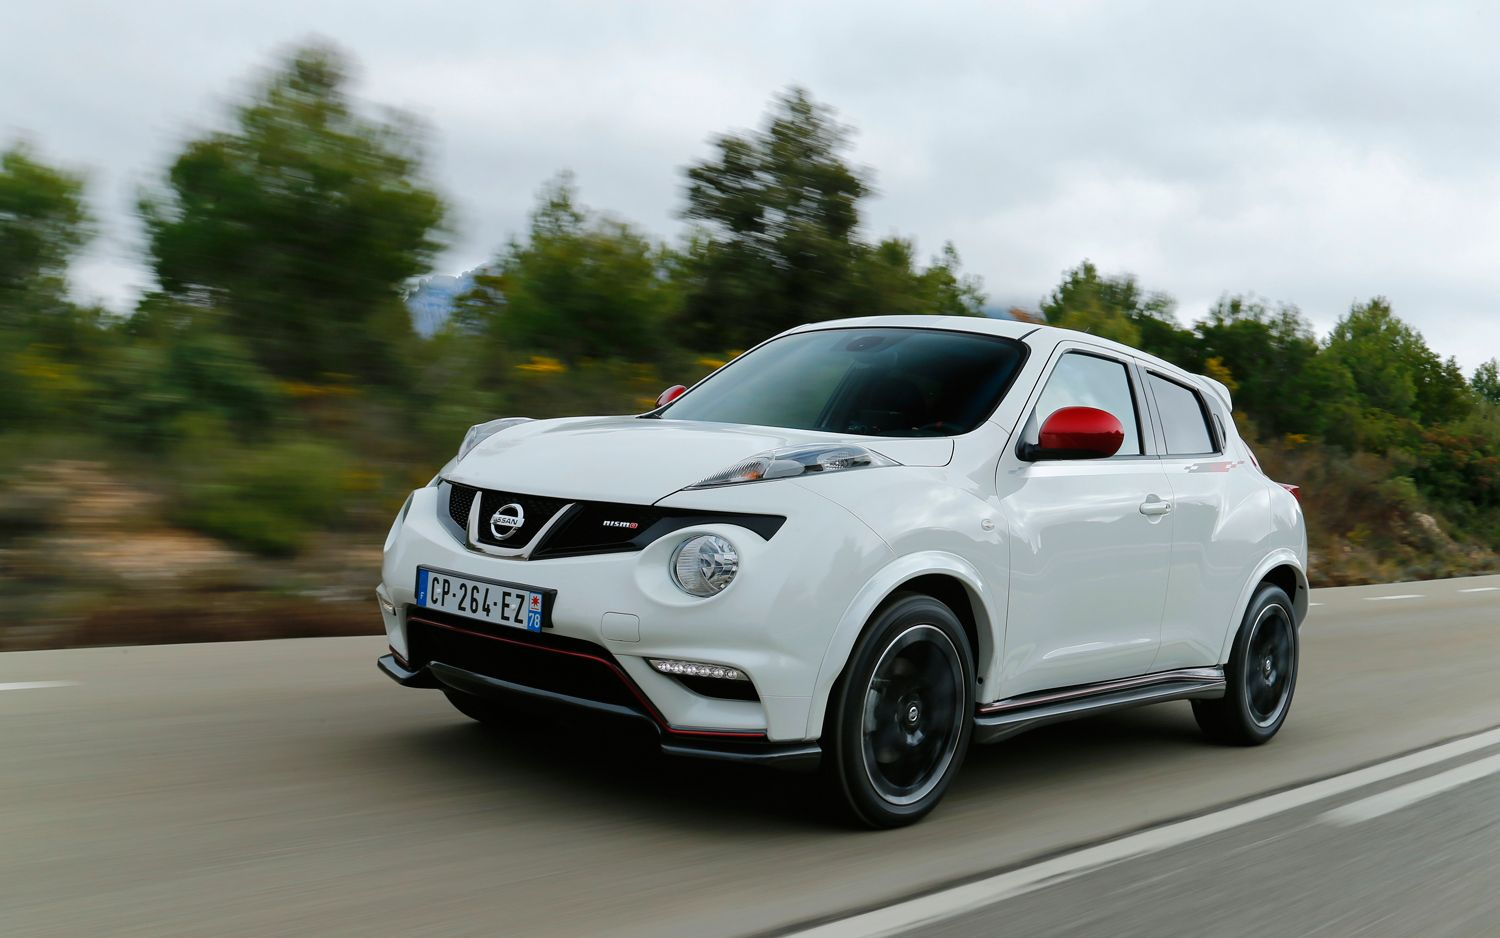 2013 Nissan Juke Nismo A 200 Hp Aero Kitted Out Version Of